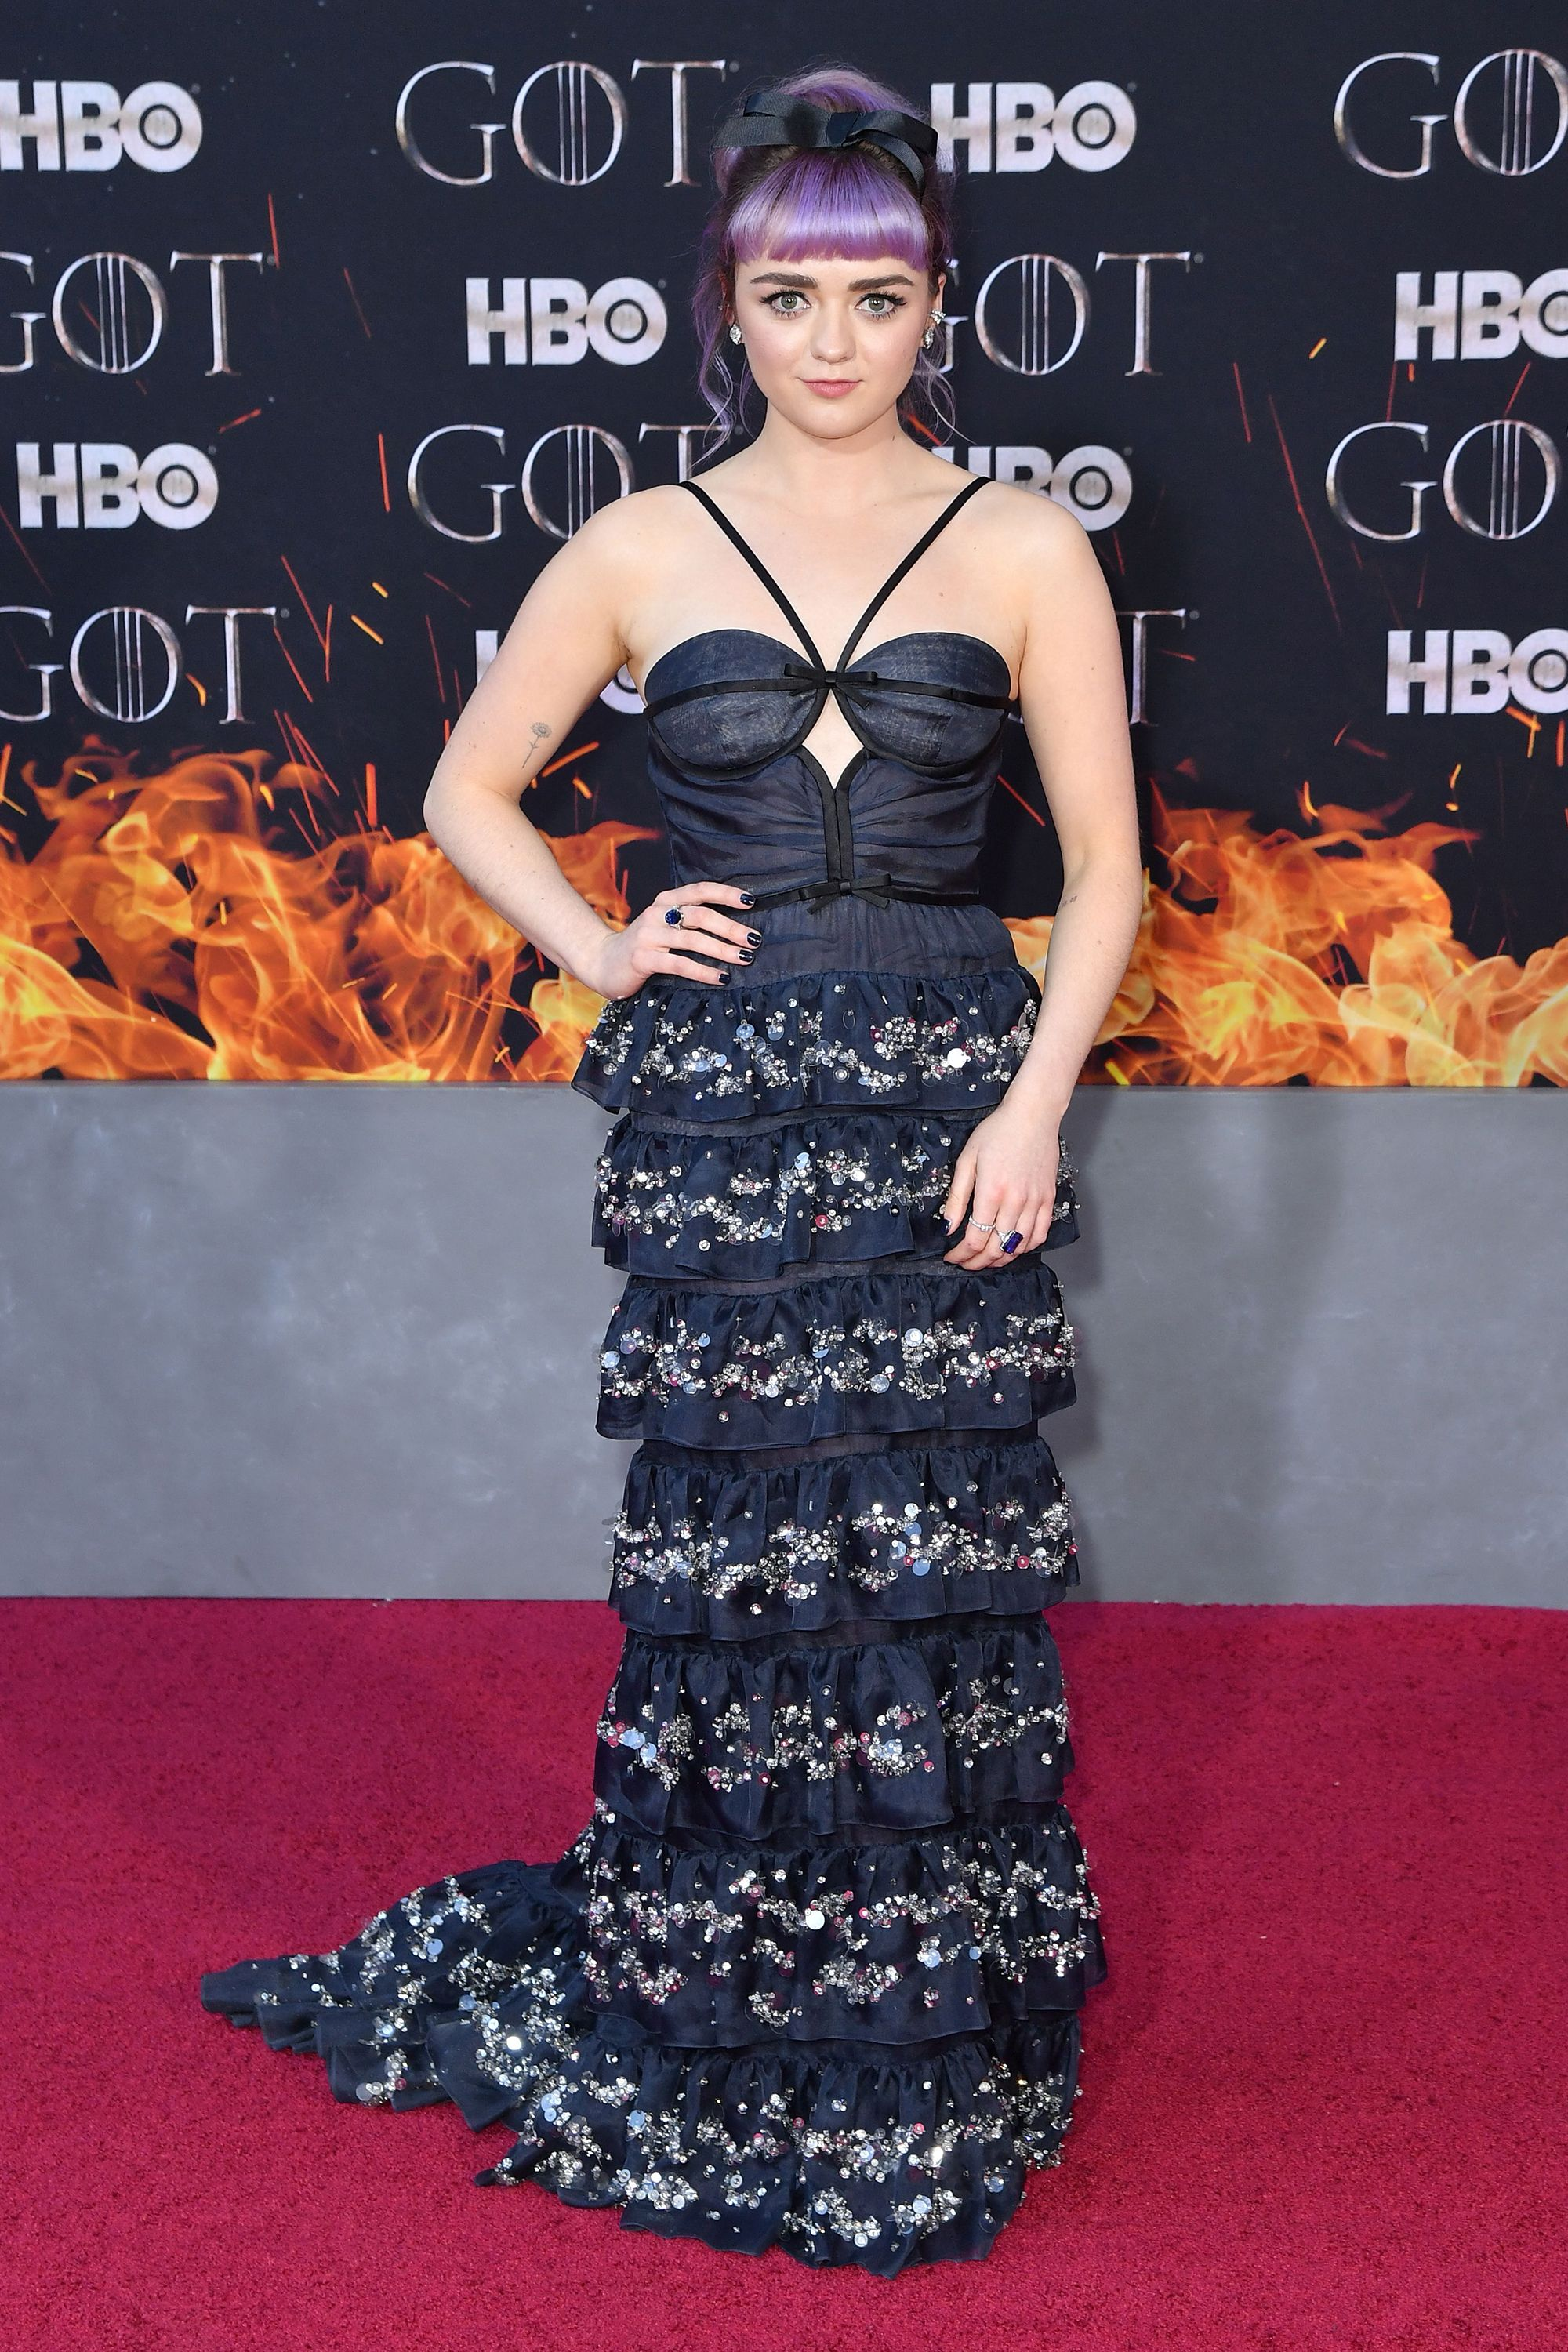 Game of Thrones premiere